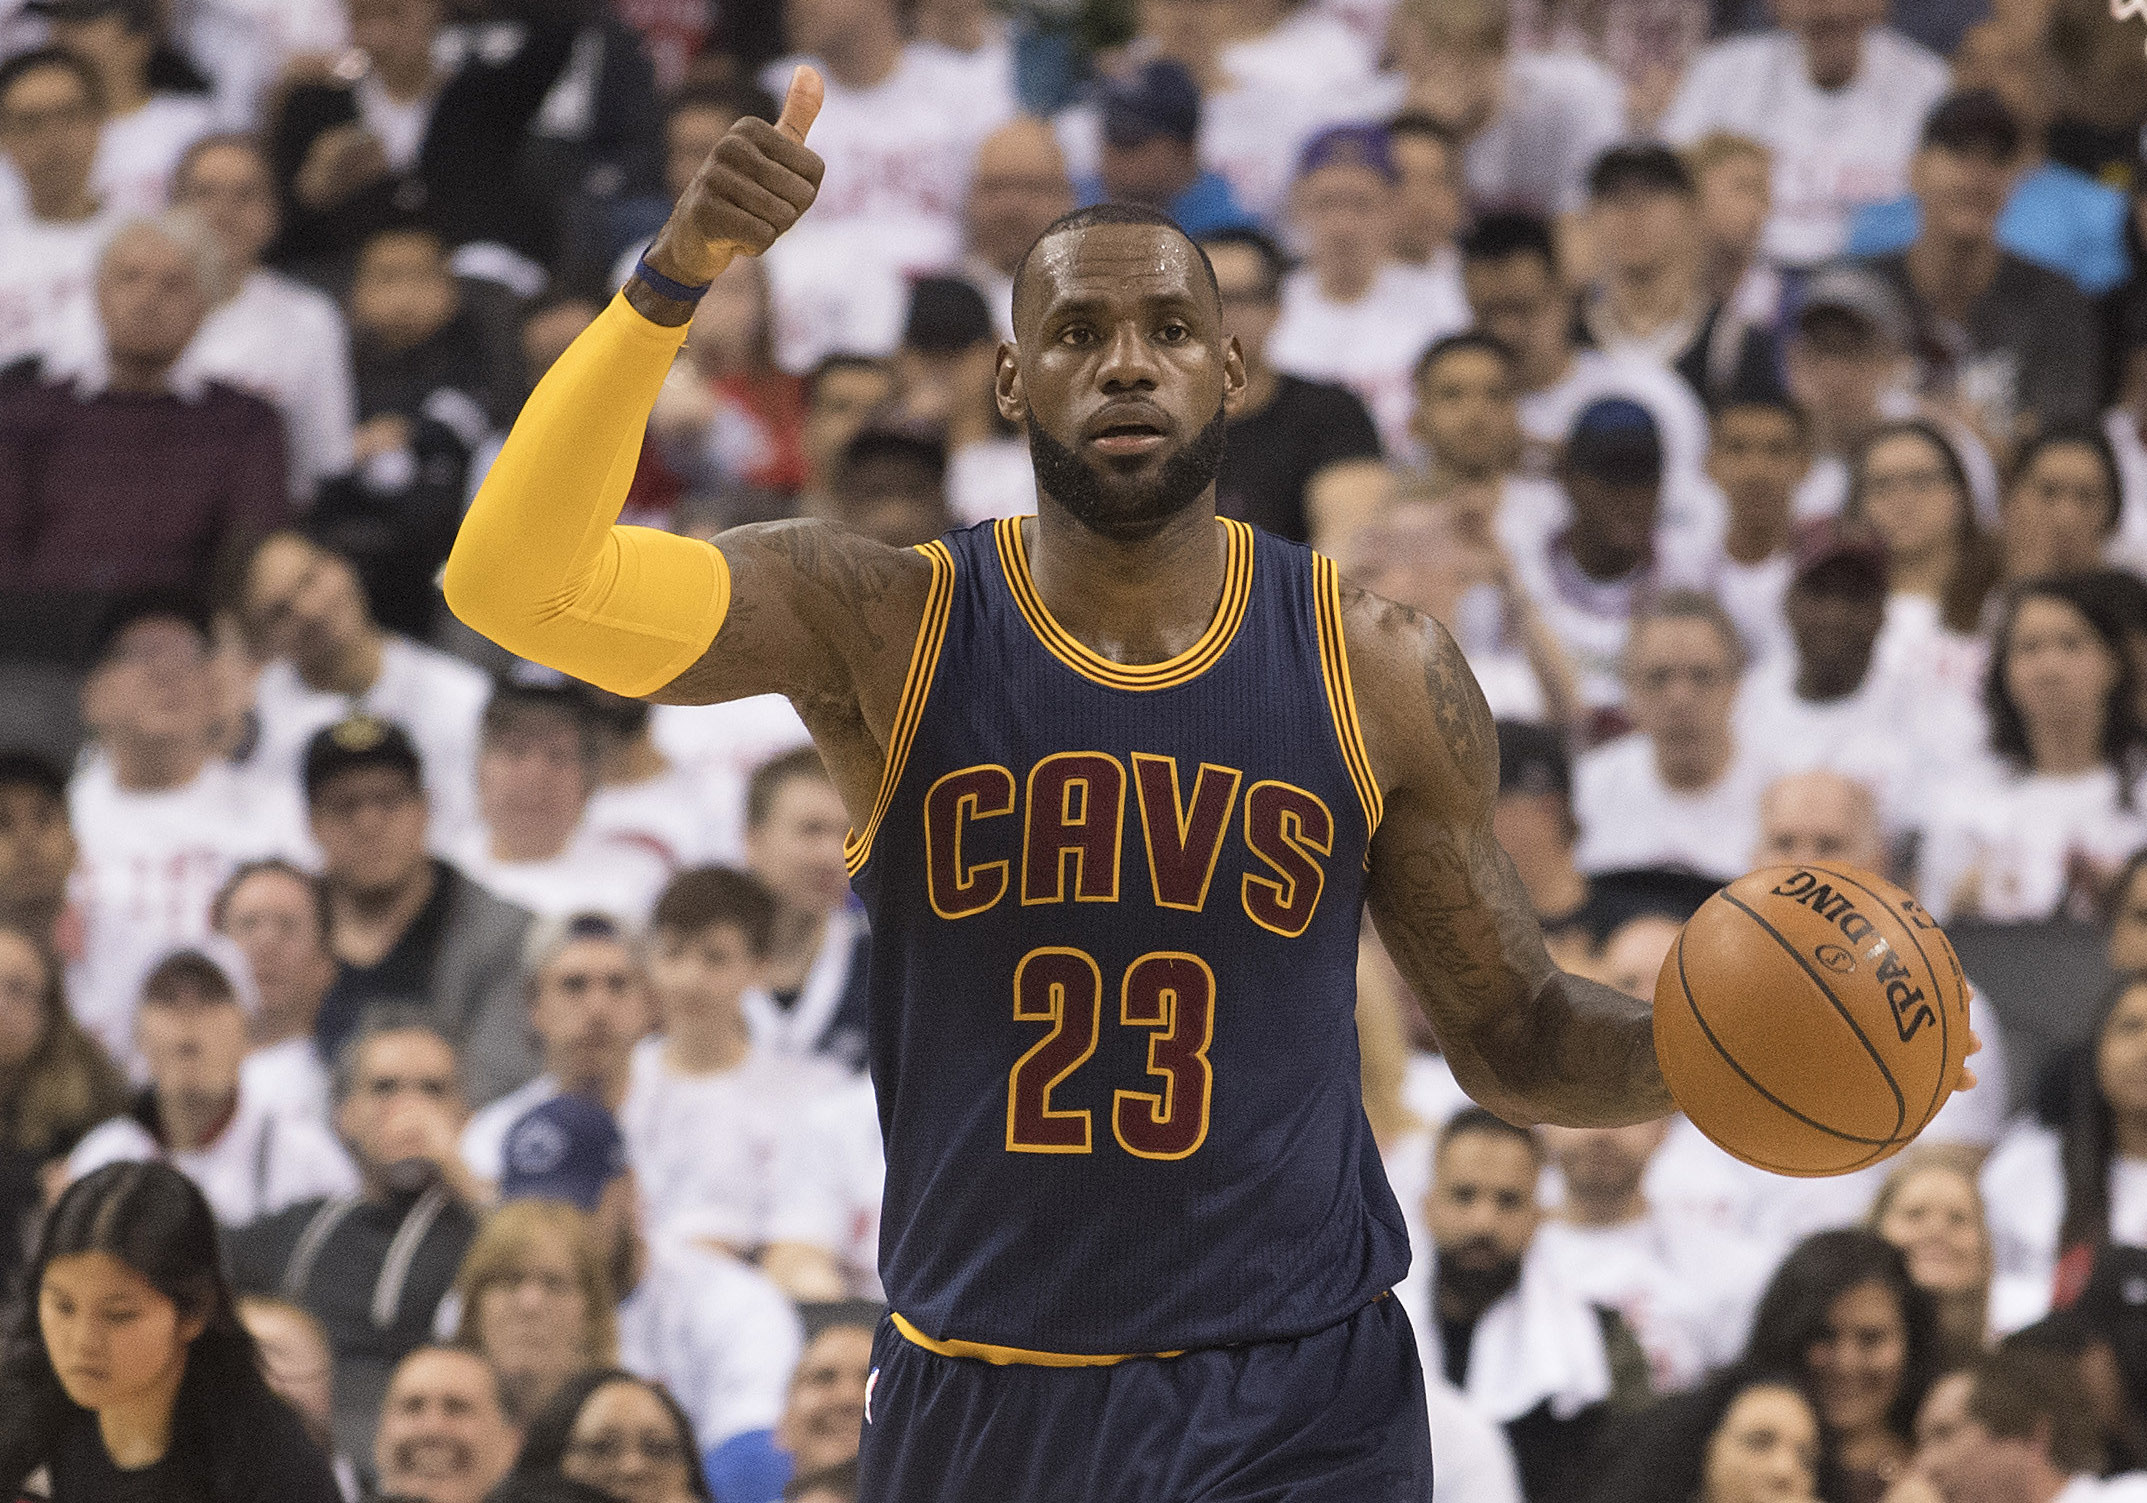 10047232-nba-playoffs-cleveland-cavaliers-at-toronto-raptors